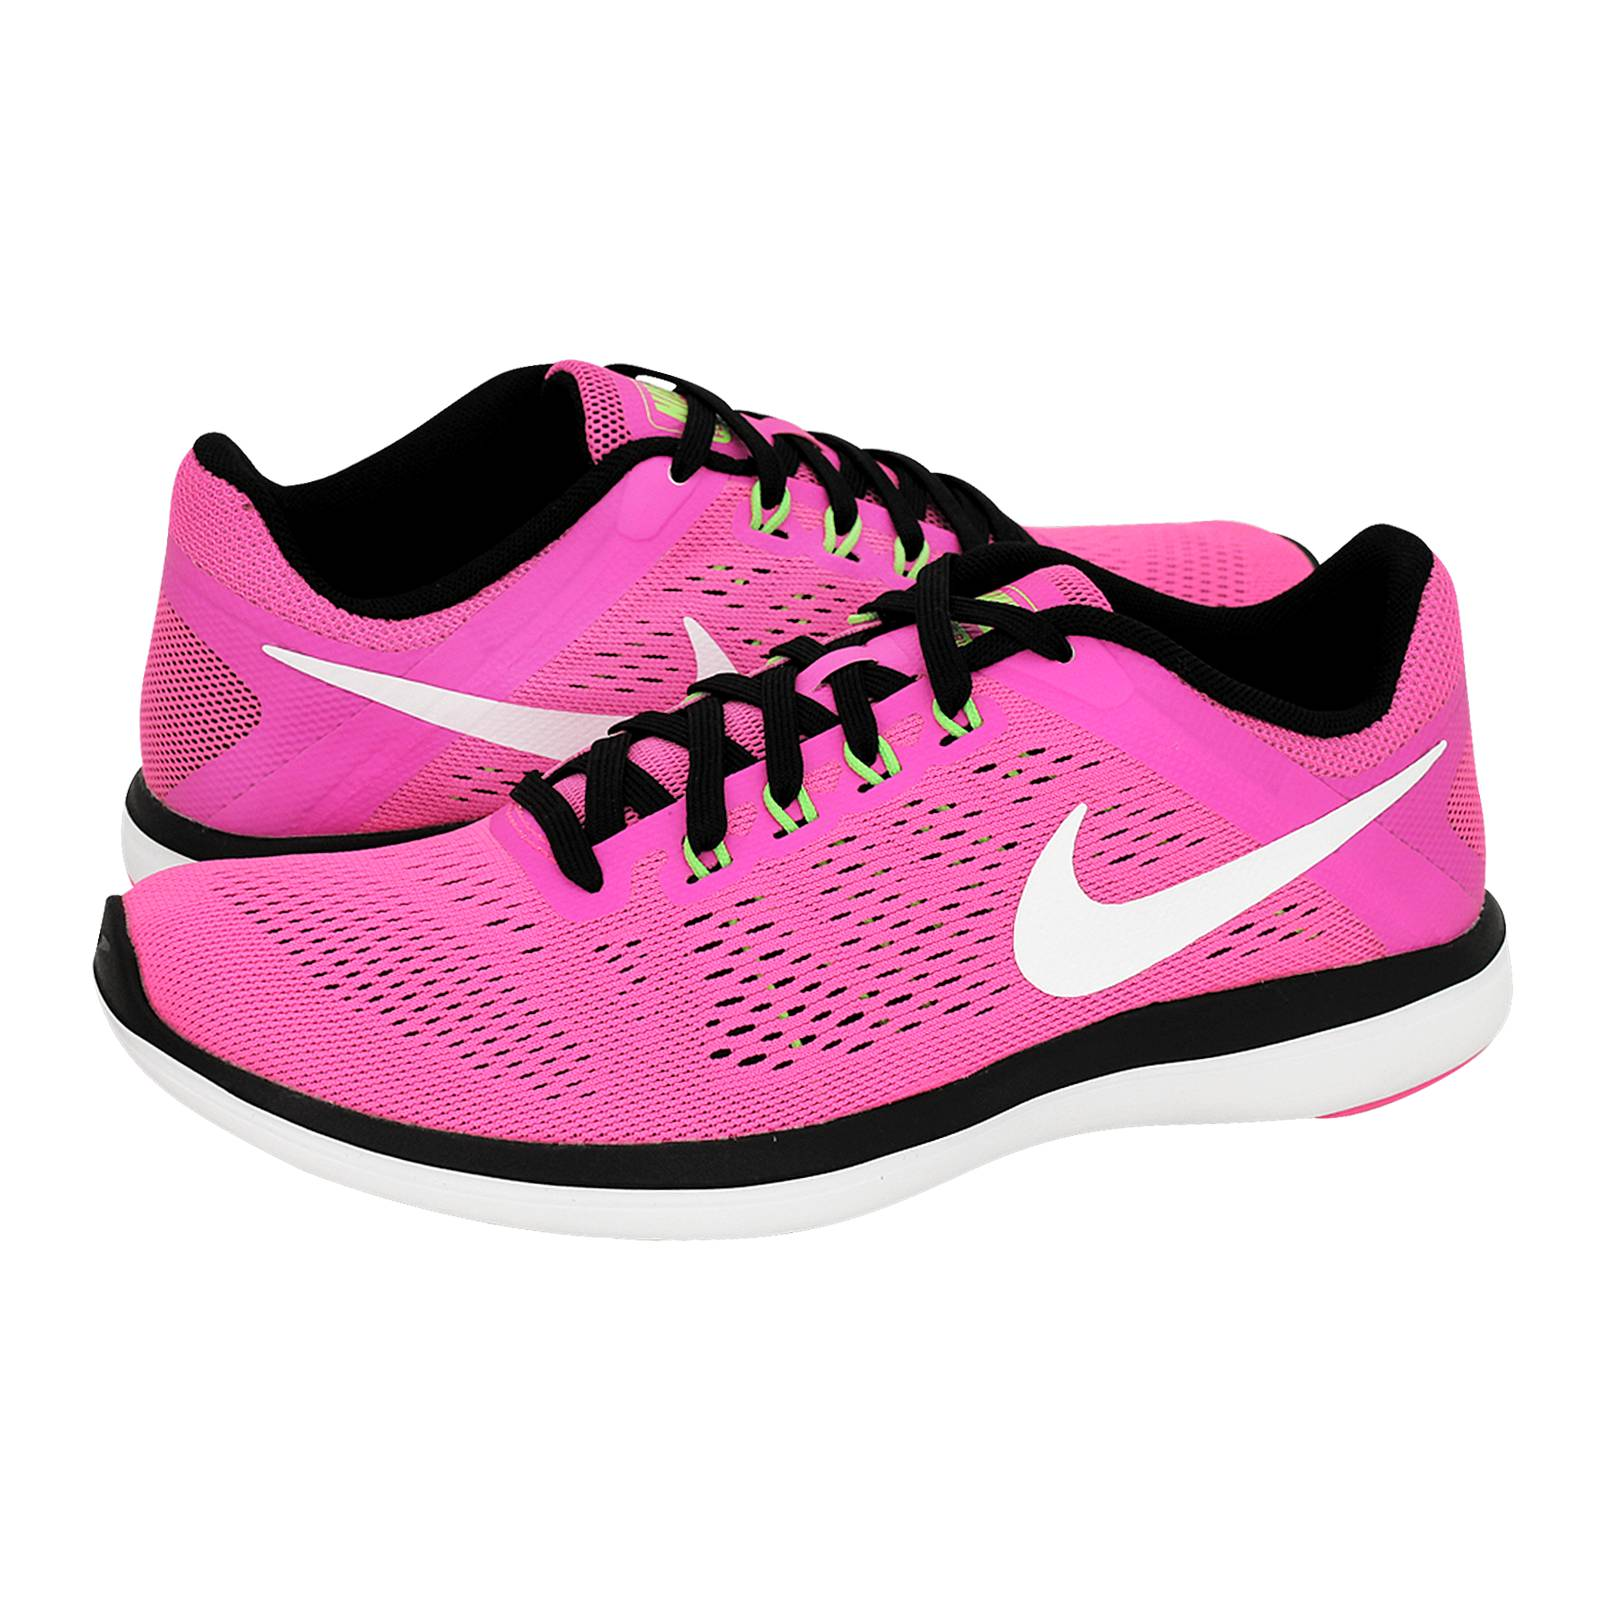 1918ea4a9cb65 Flex 2016 RN - Nike Women s athletic shoes made of fabric and ...